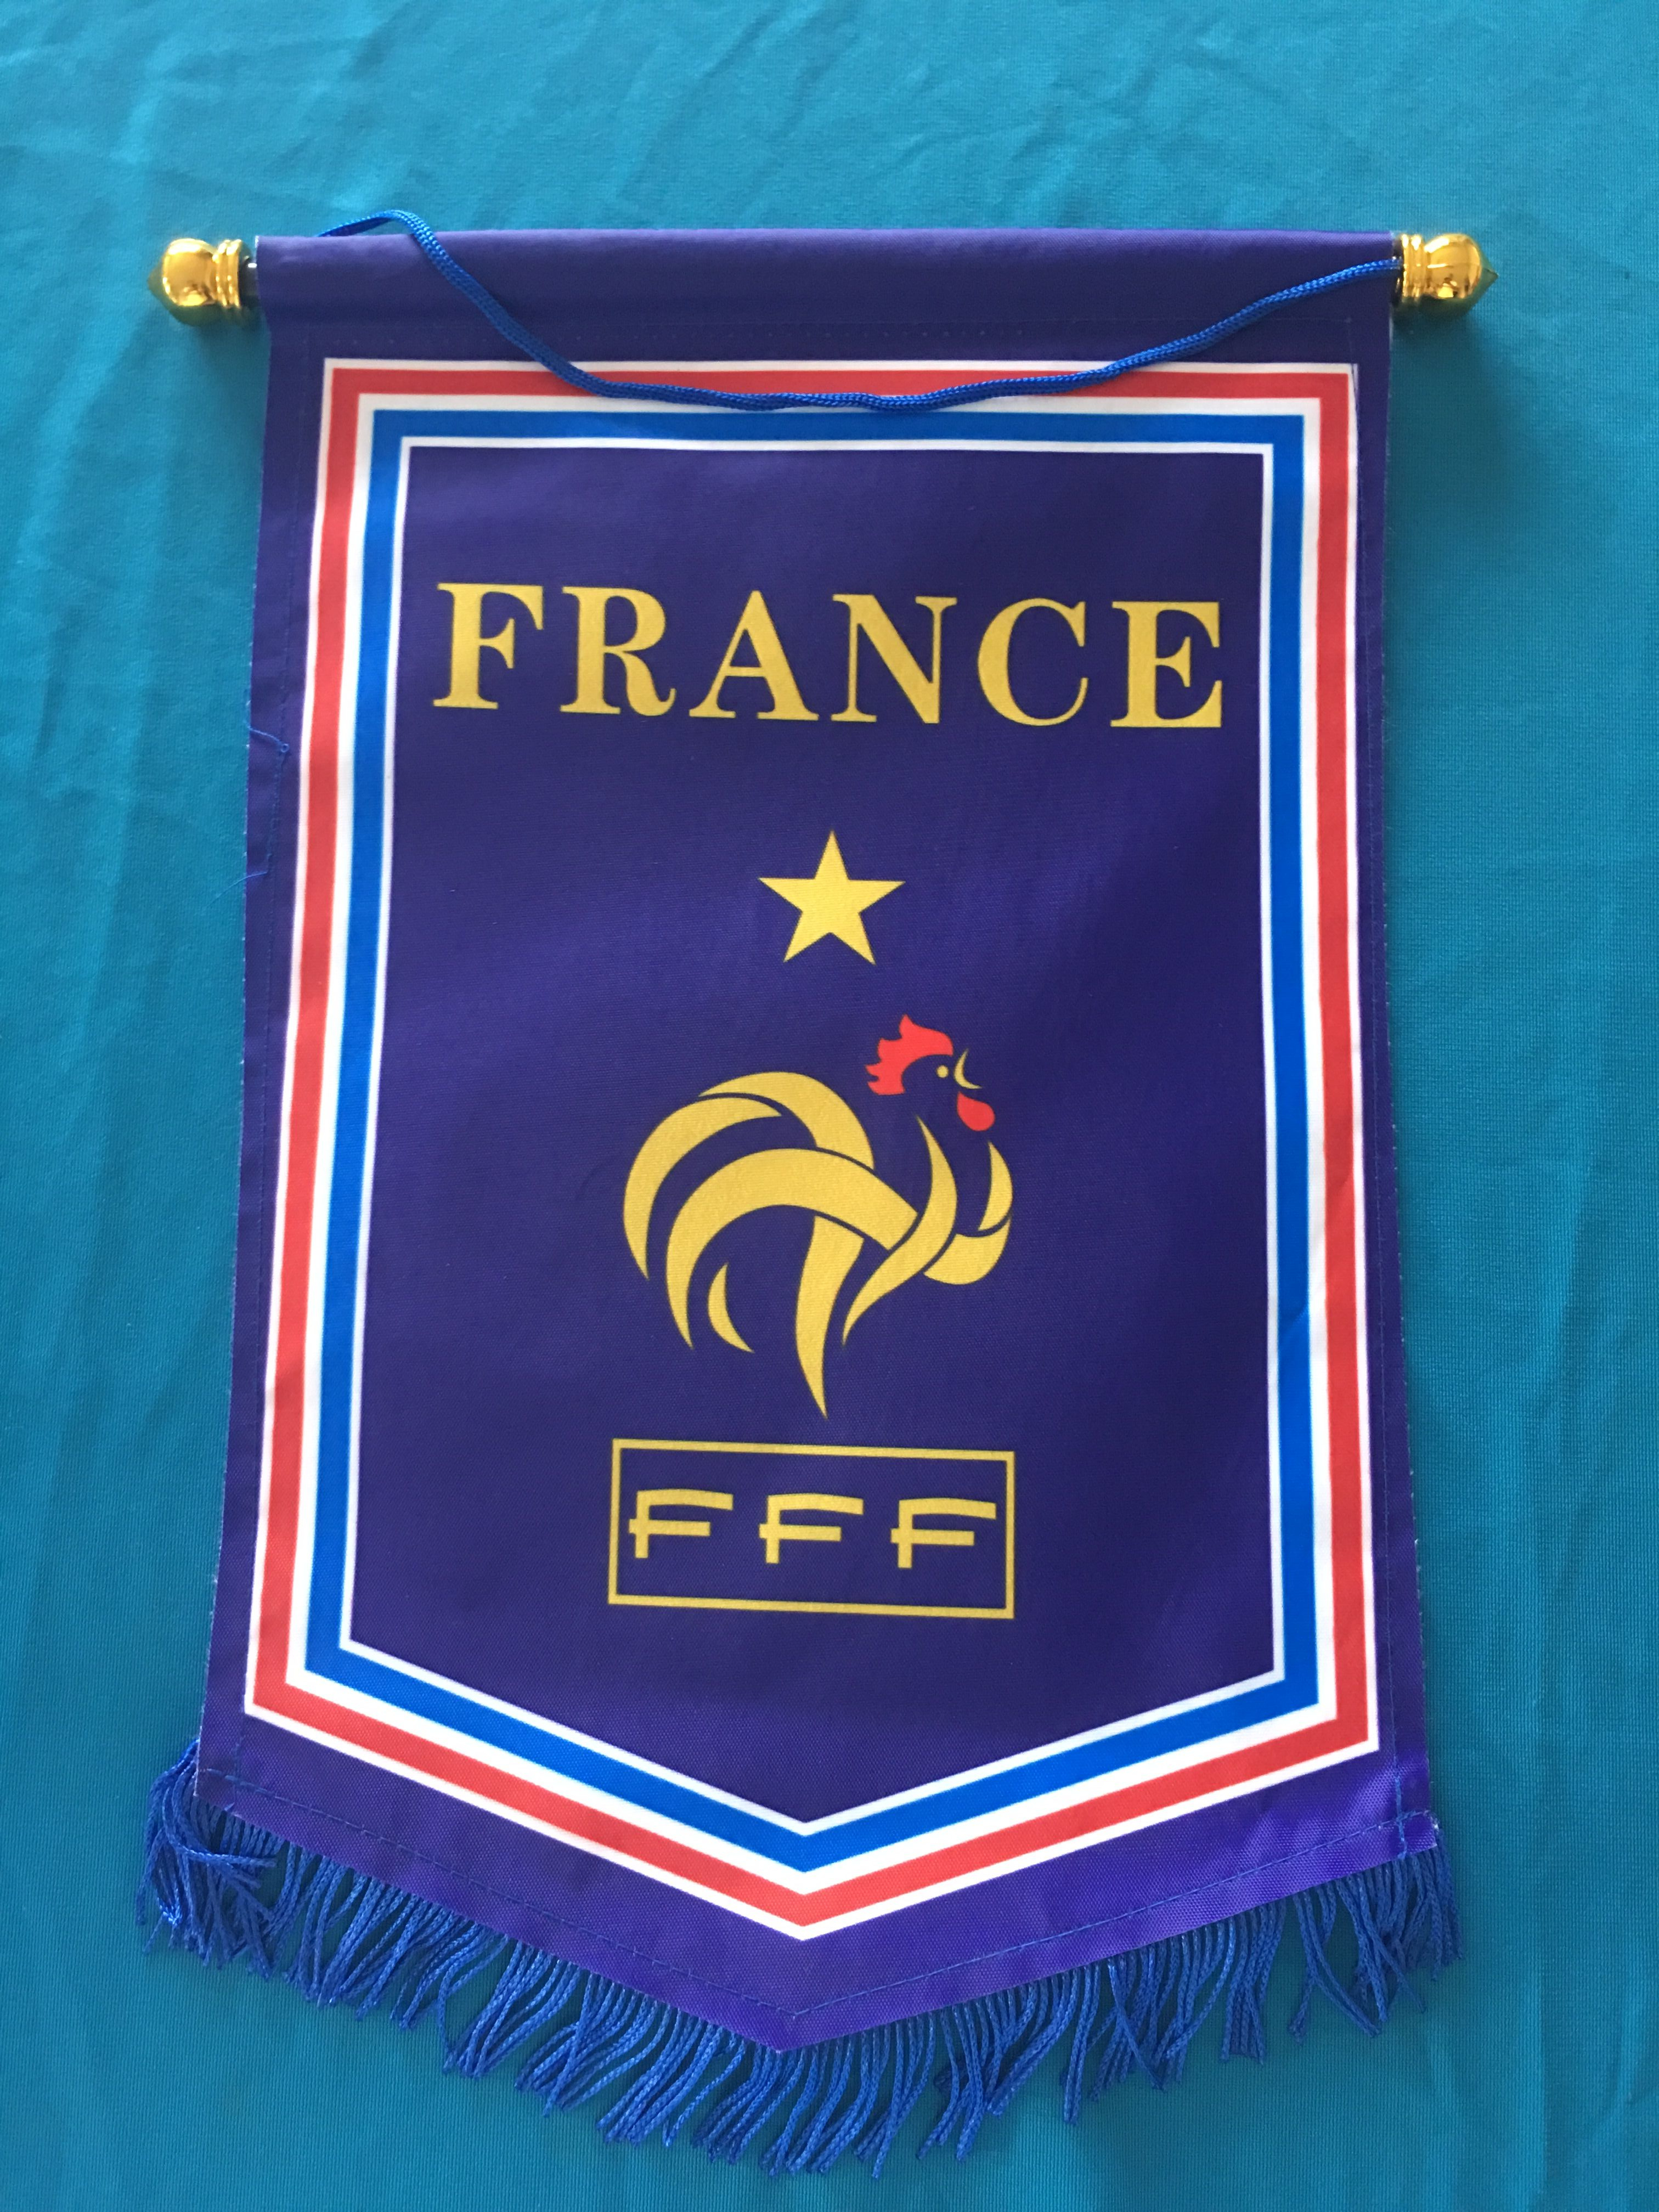 France Hang Flag Decor Football Fans Souvenir